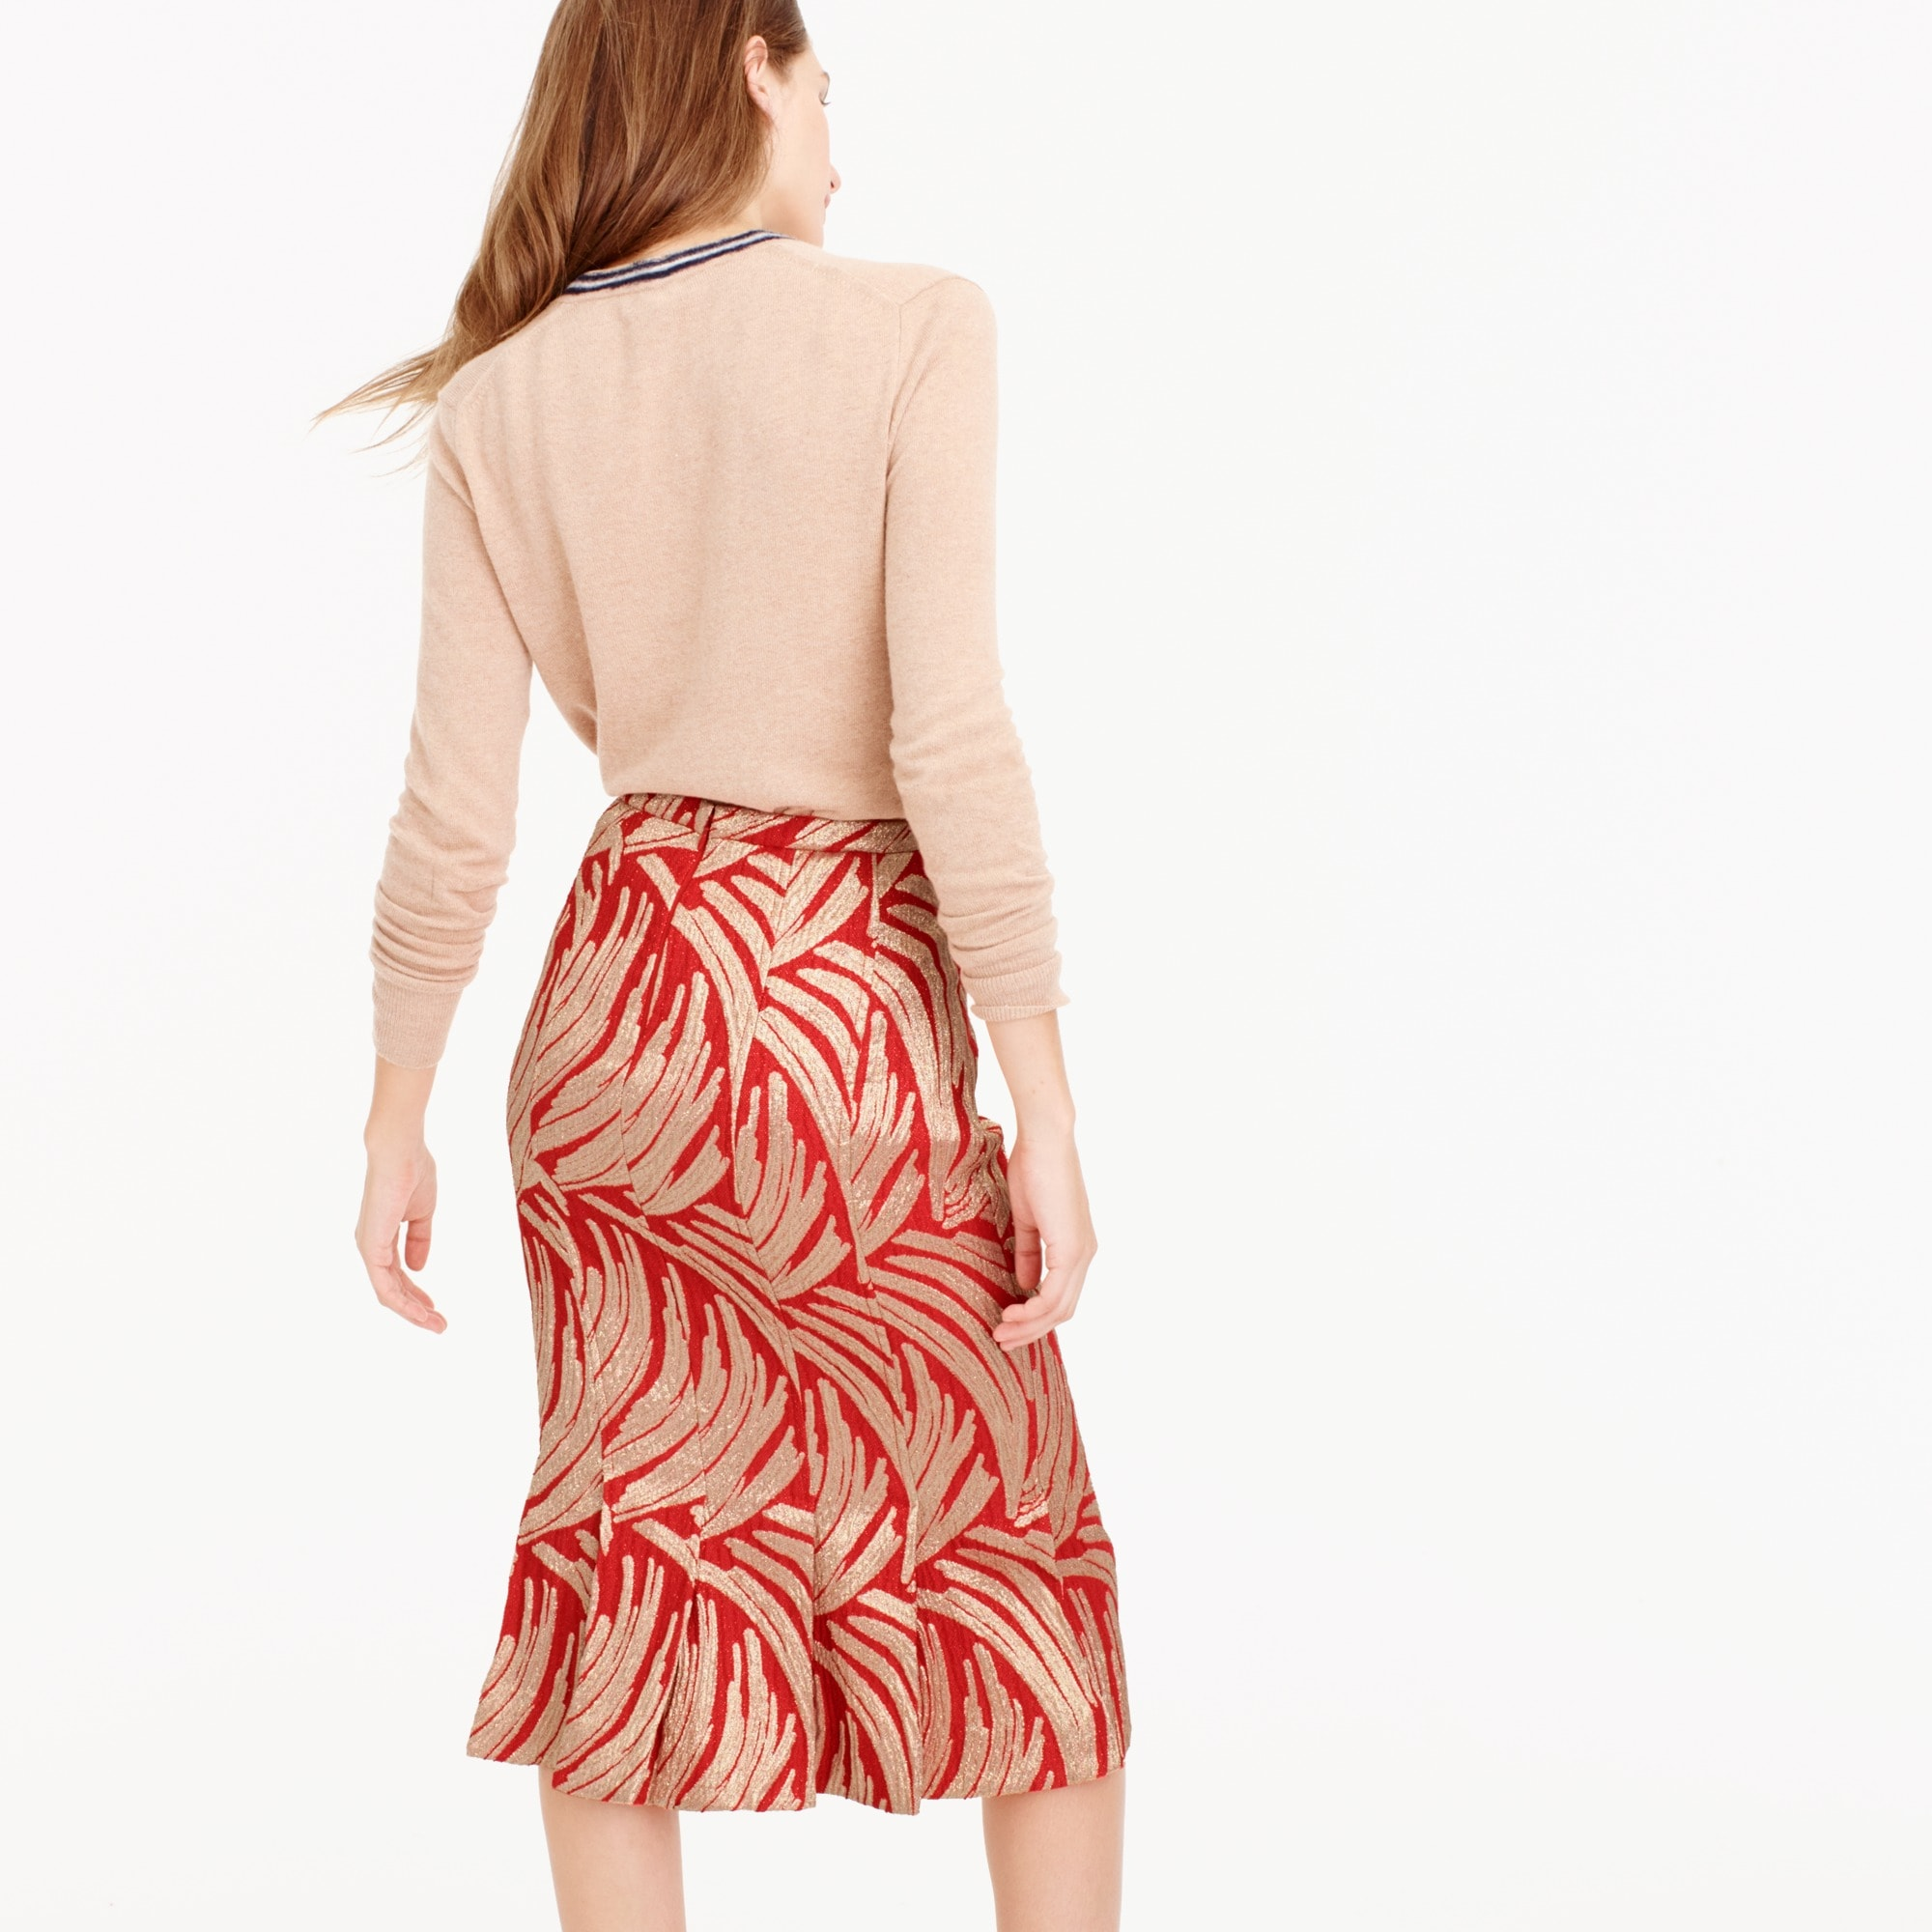 Panel skirt in palm leaf jacquard